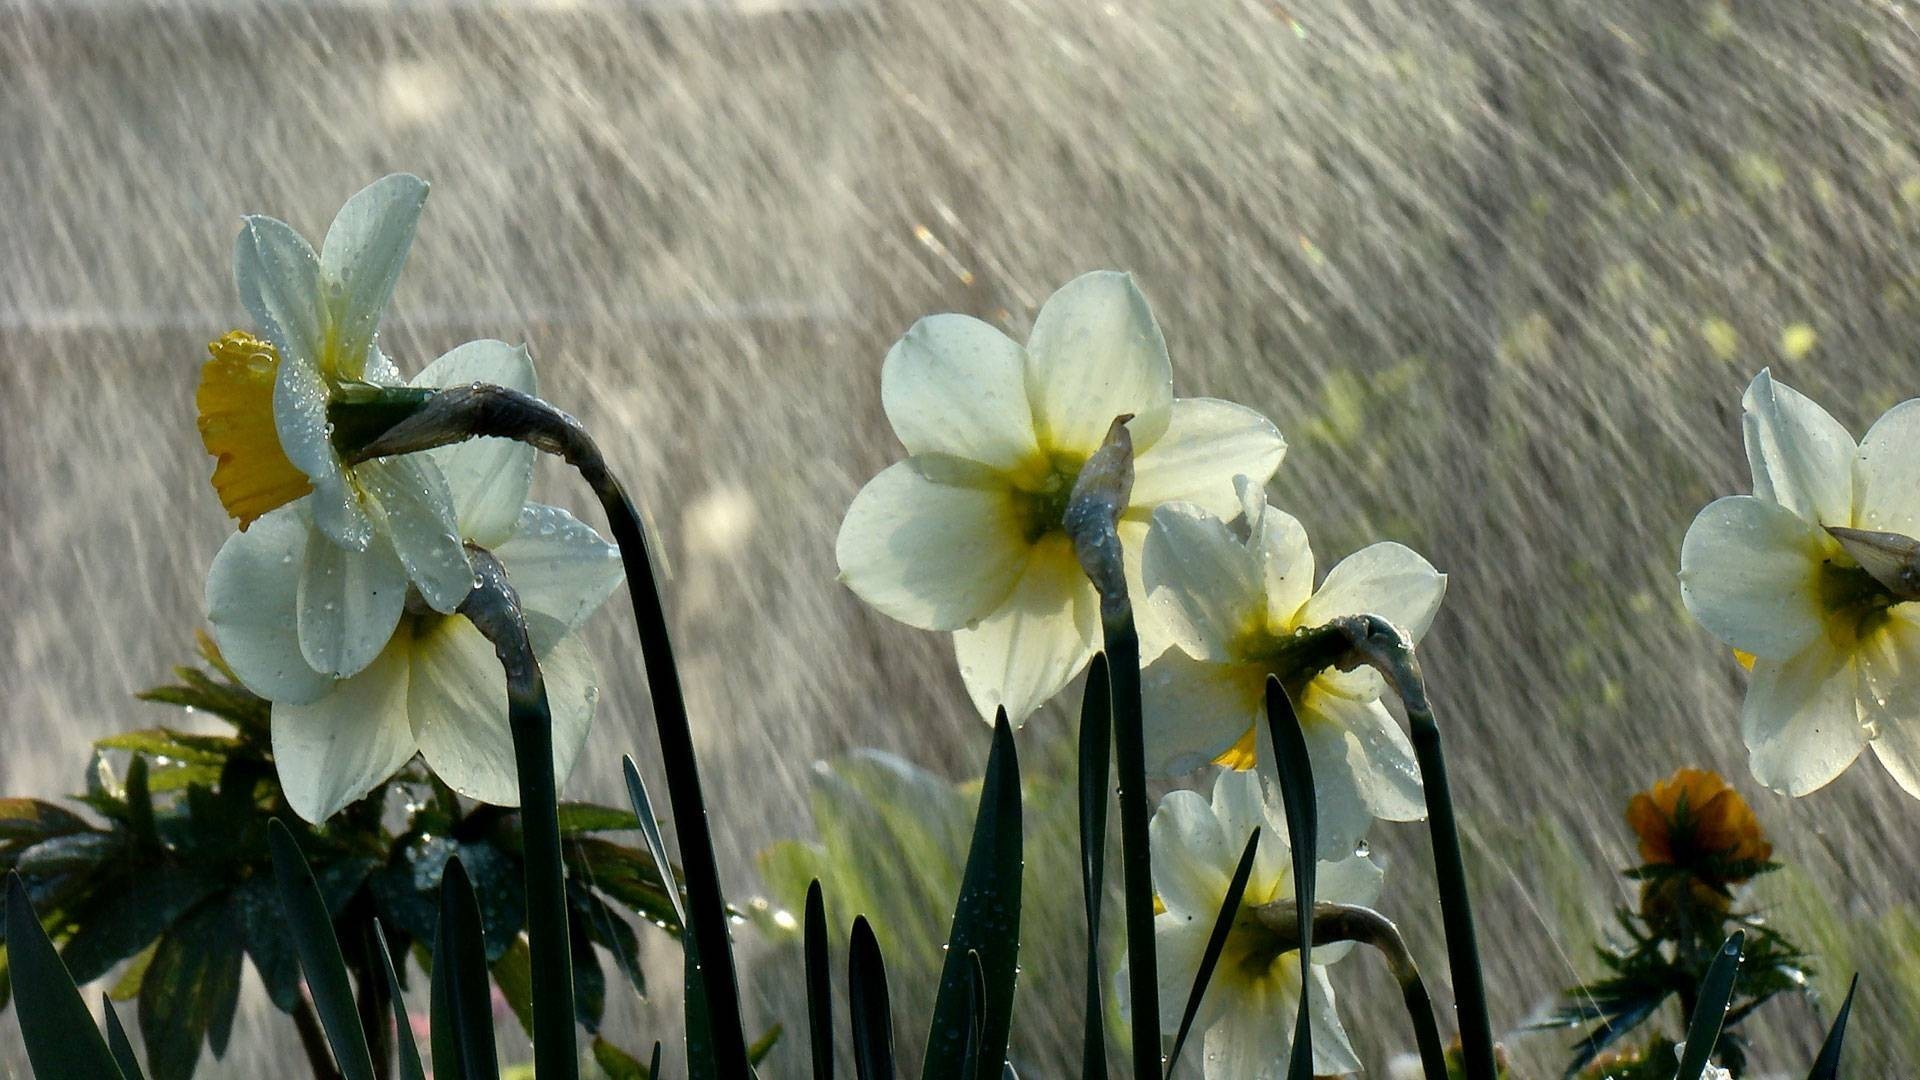 Beautiful Rain on Flower Wallpaper HD Wallpapers 1920x1080